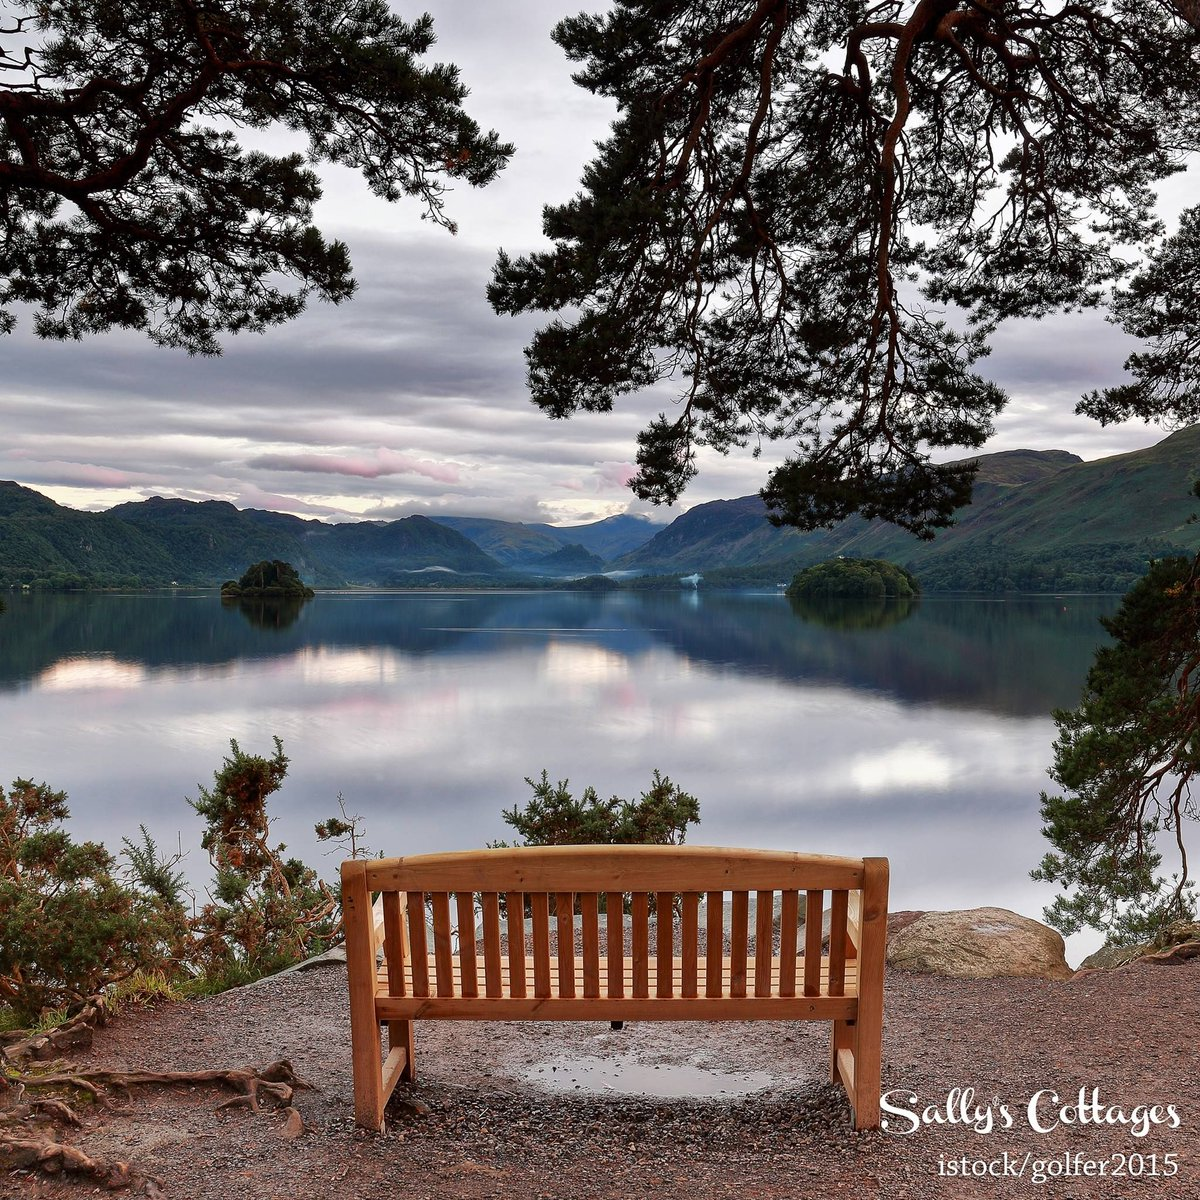 Fancy being here? #WIN £100 vouchers for Sally&#39;s Cottages! #RT &amp; FOLLOW @sallyscottages to enter! #giveaway #Friyay  http:// buff.ly/2sFkFNL  &nbsp;  <br>http://pic.twitter.com/T1pIdUXcpa